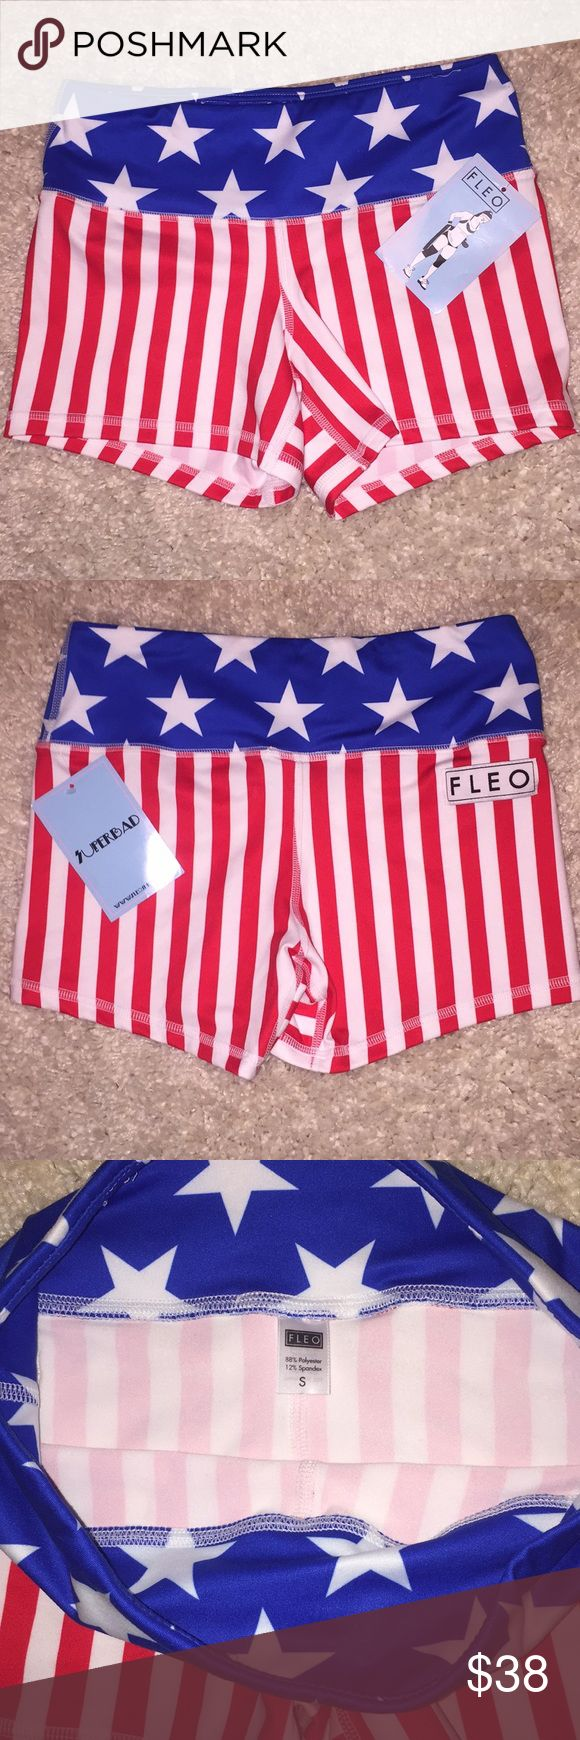 BNWT 🇺🇸 Fleo Crossfit Workout Booty Shorts 🇺🇸 Fleo crossfit Shorts new with tags! Bought and are too small for me. These have been sold out online! Fleo Shorts